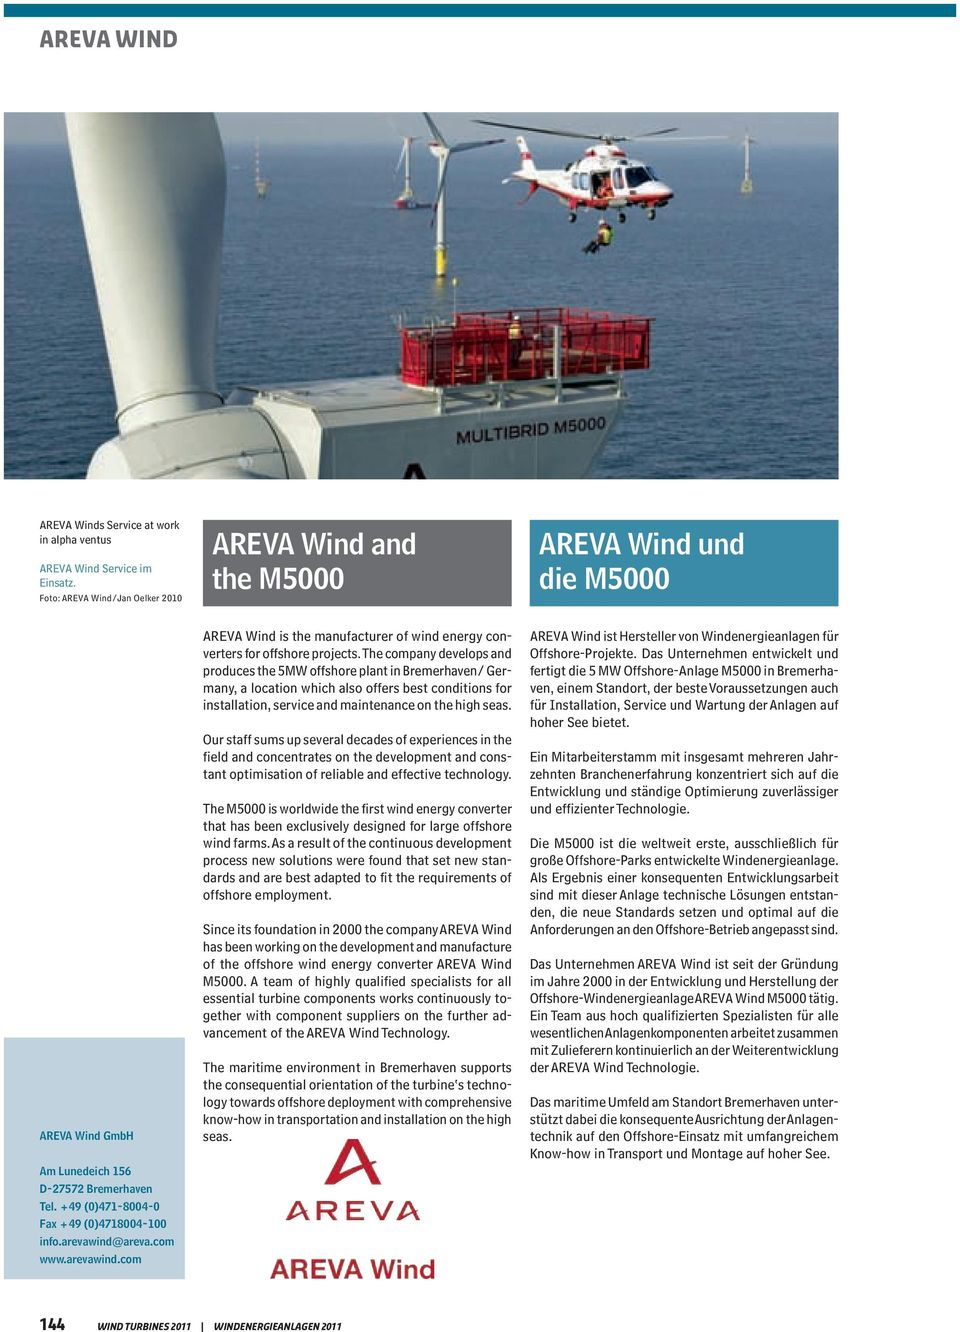 arevawind@areva.com www.arevawind.com AREVA Wind is the manufacturer of wind energy converters for offshore projects.